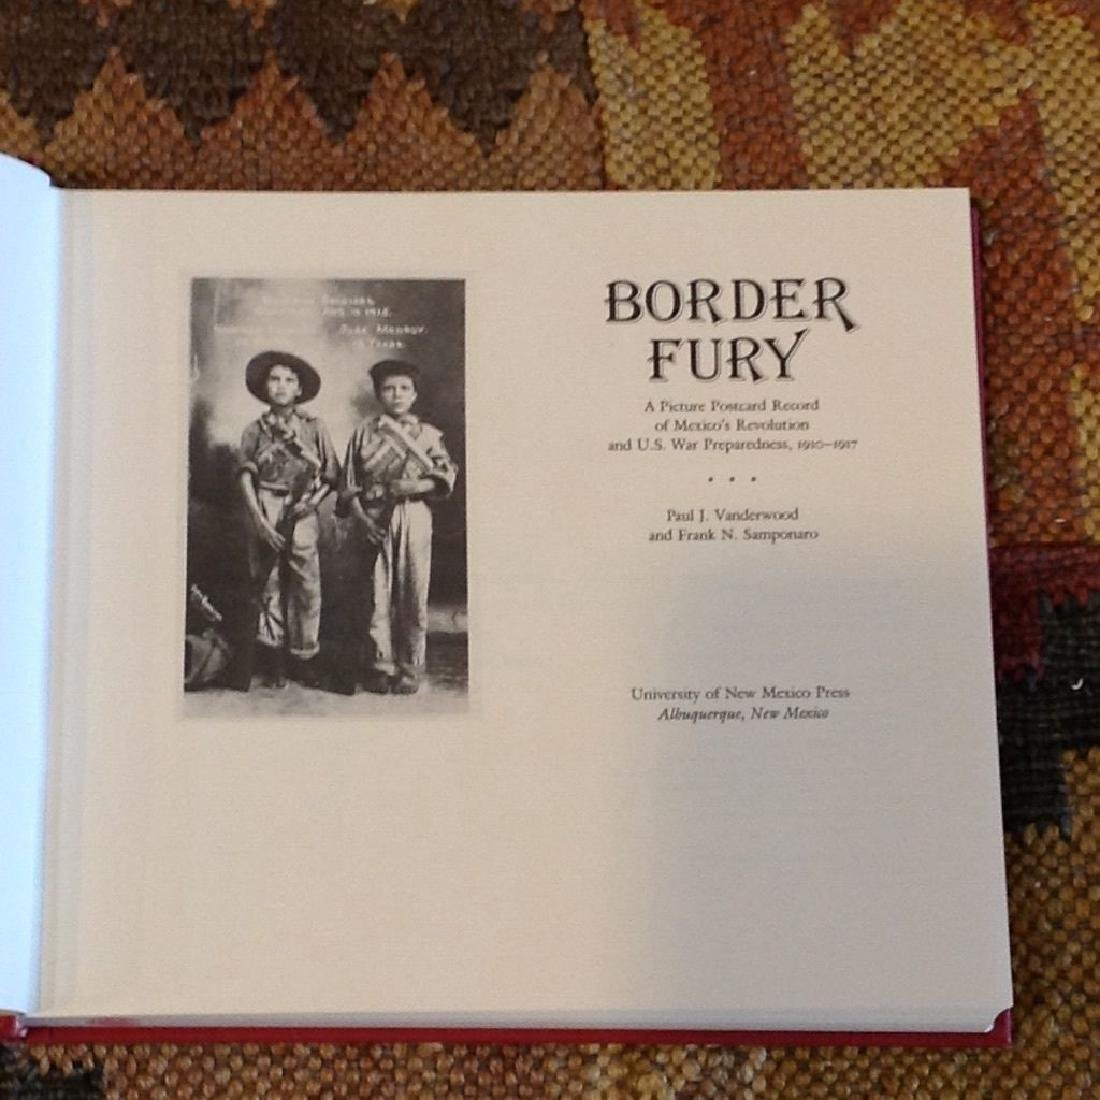 Border Fury: A Picture Postcard Record of Mexico's - 4